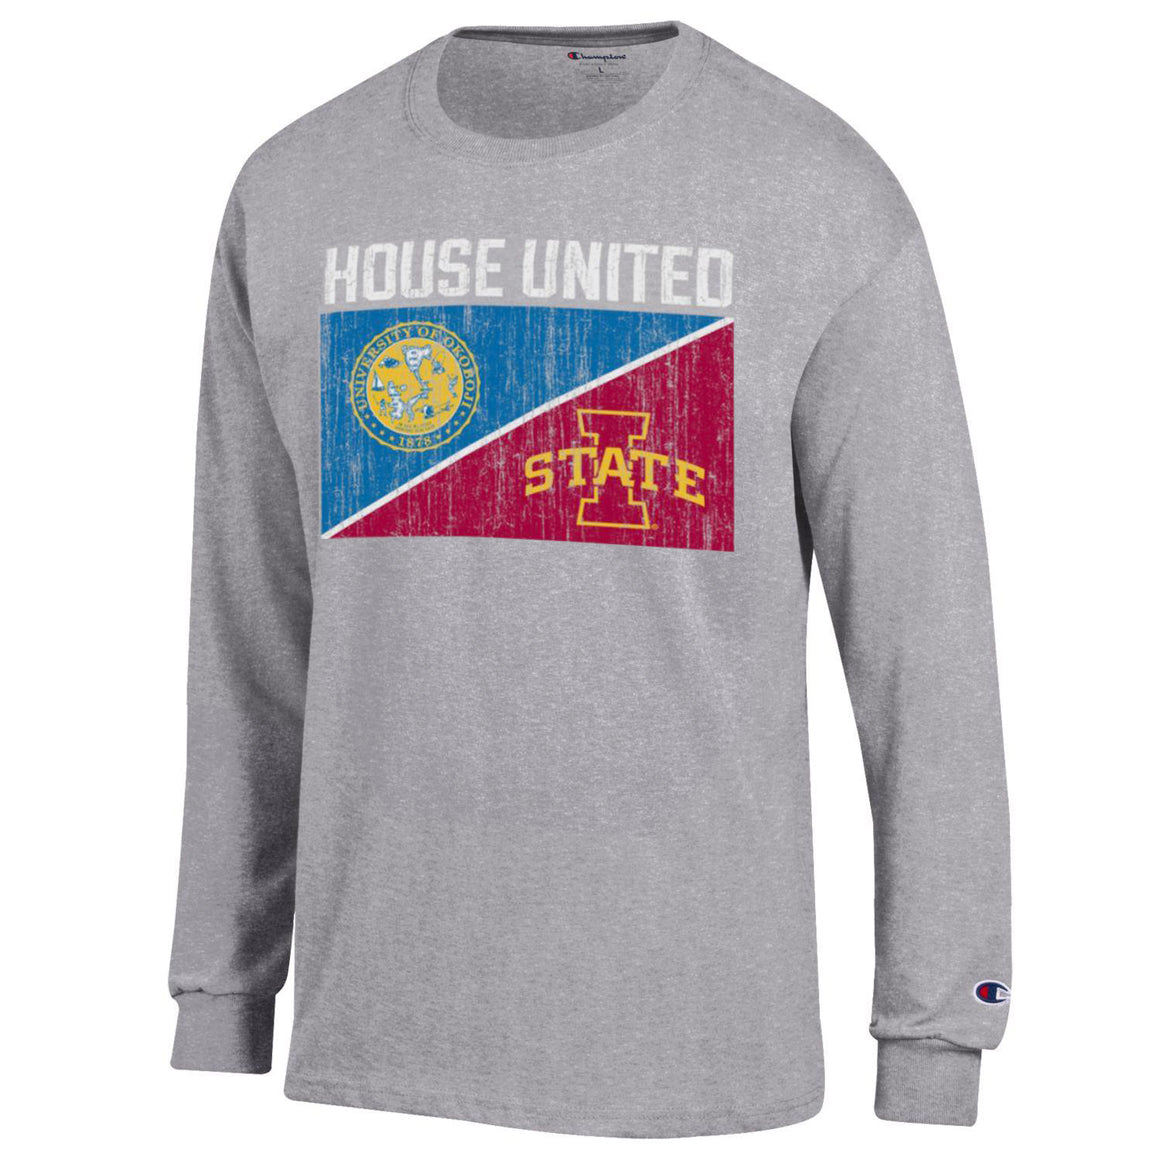 House United Long Sleeve - Okoboji/Iowa State